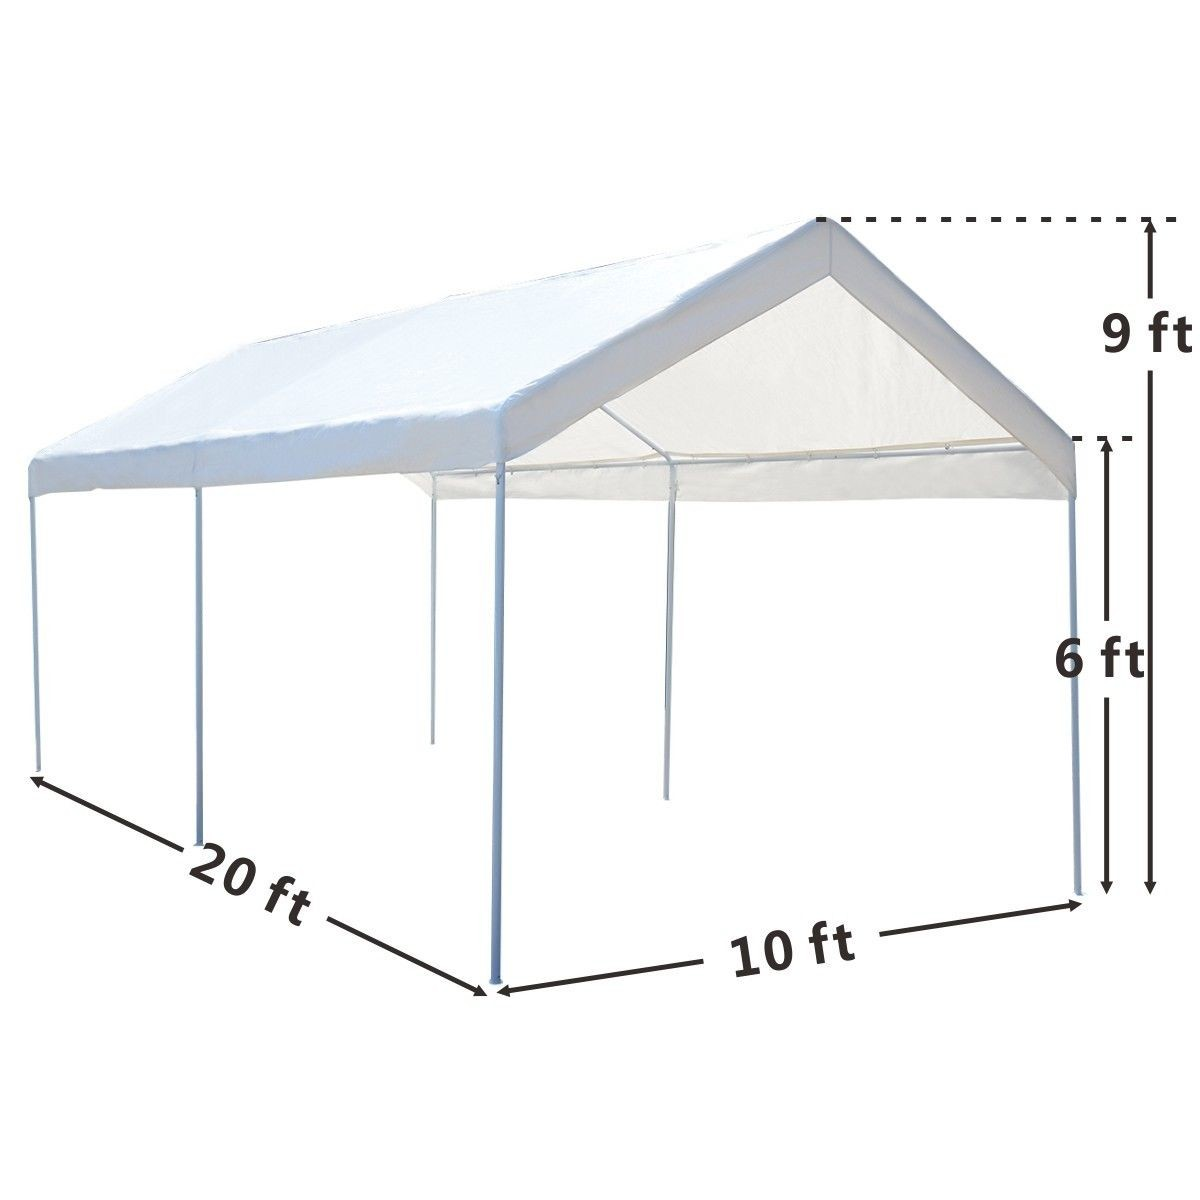 Portable Car Carport Garage Cover Steel Frame Canopy